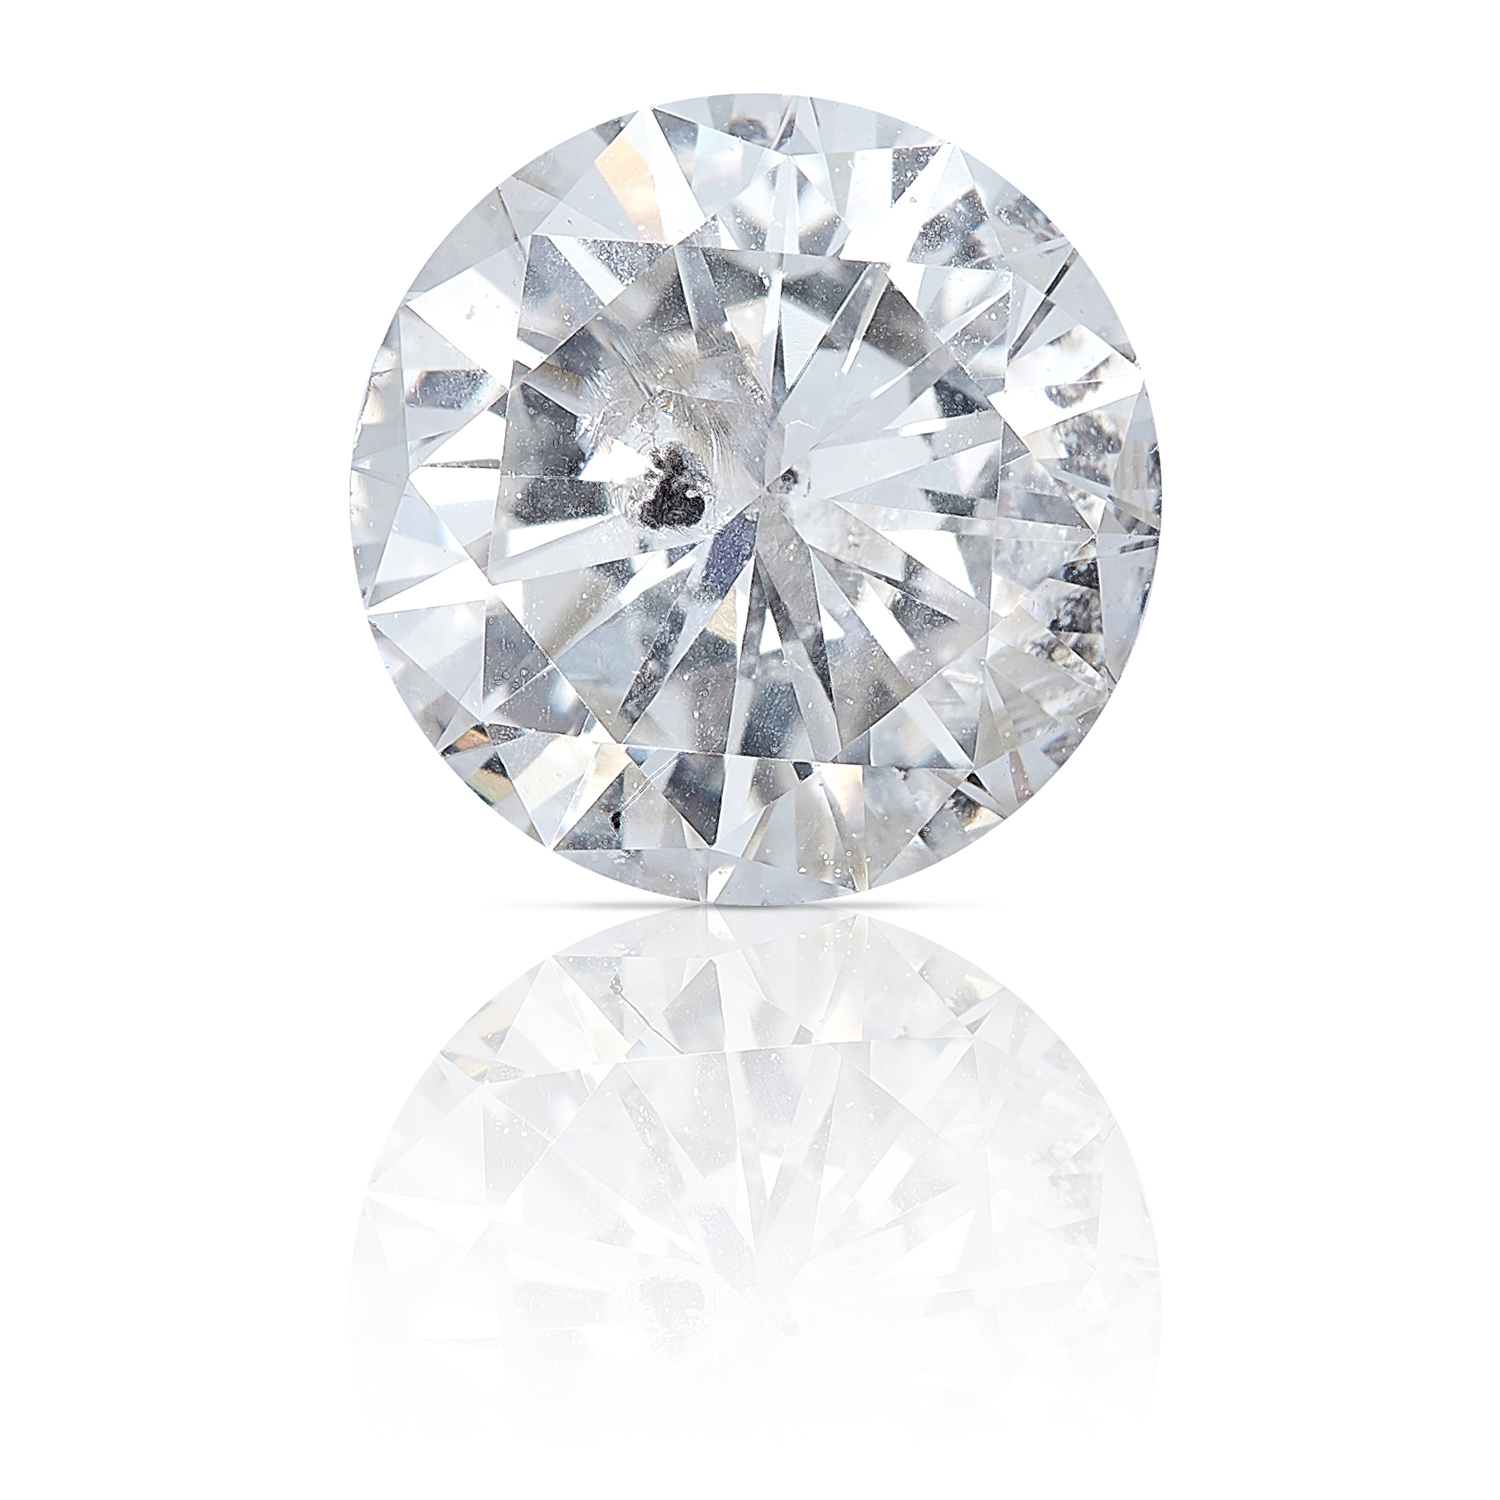 A ROUND CUT MODERN BRILLIANT DIAMOND TOTALLING 1.04cts, UNMOUNTED.